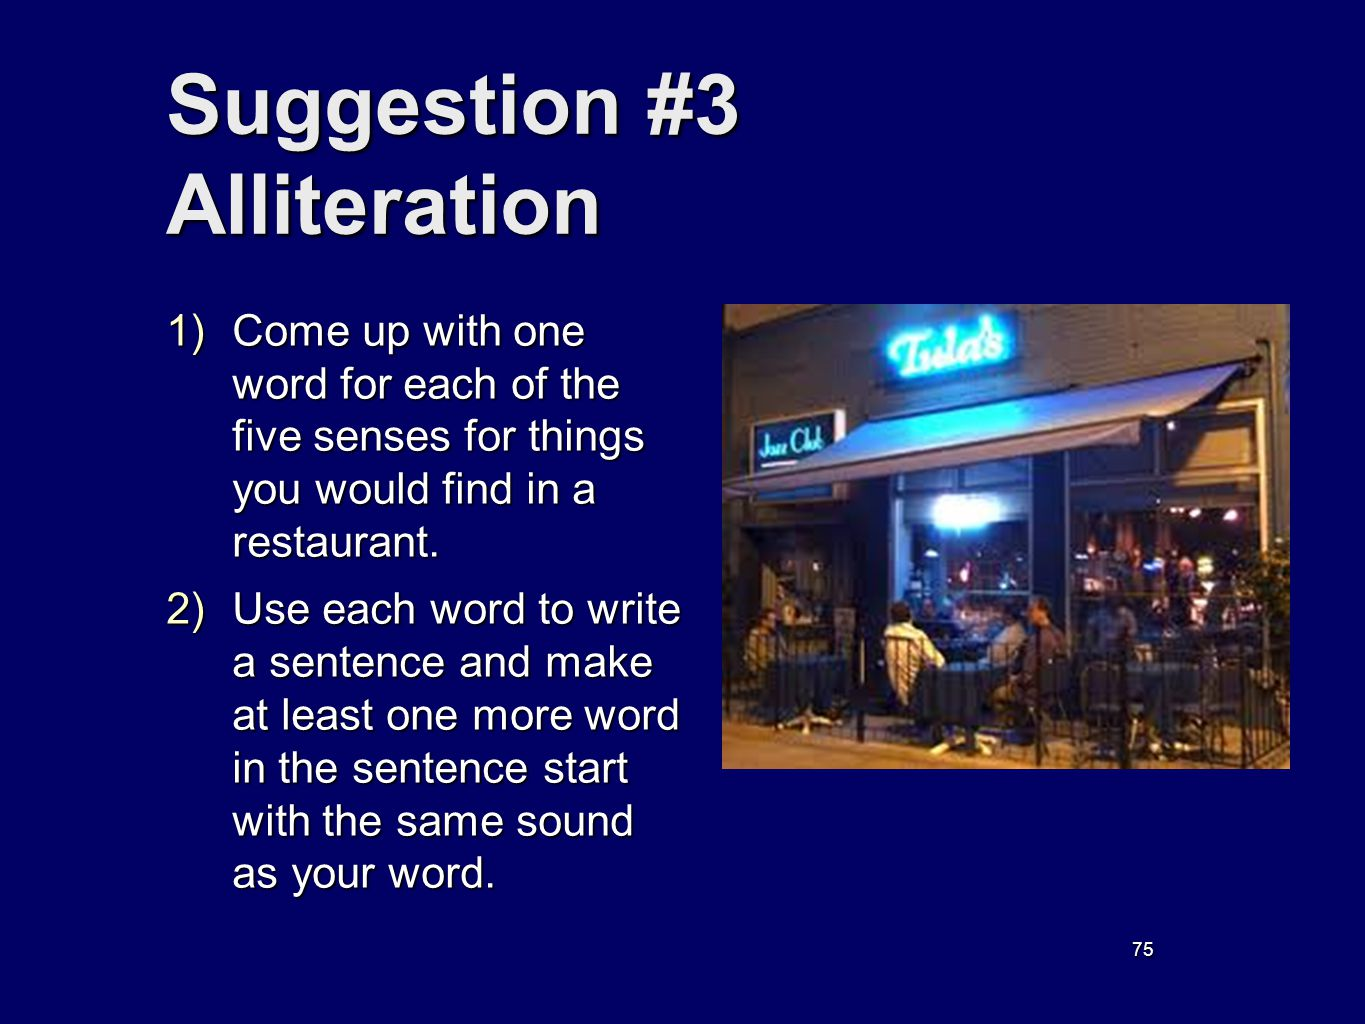 75 Suggestion #3 Alliteration 1) Come up with one word for each of the five senses for things you would find in a restaurant. 2) Use each word to writ